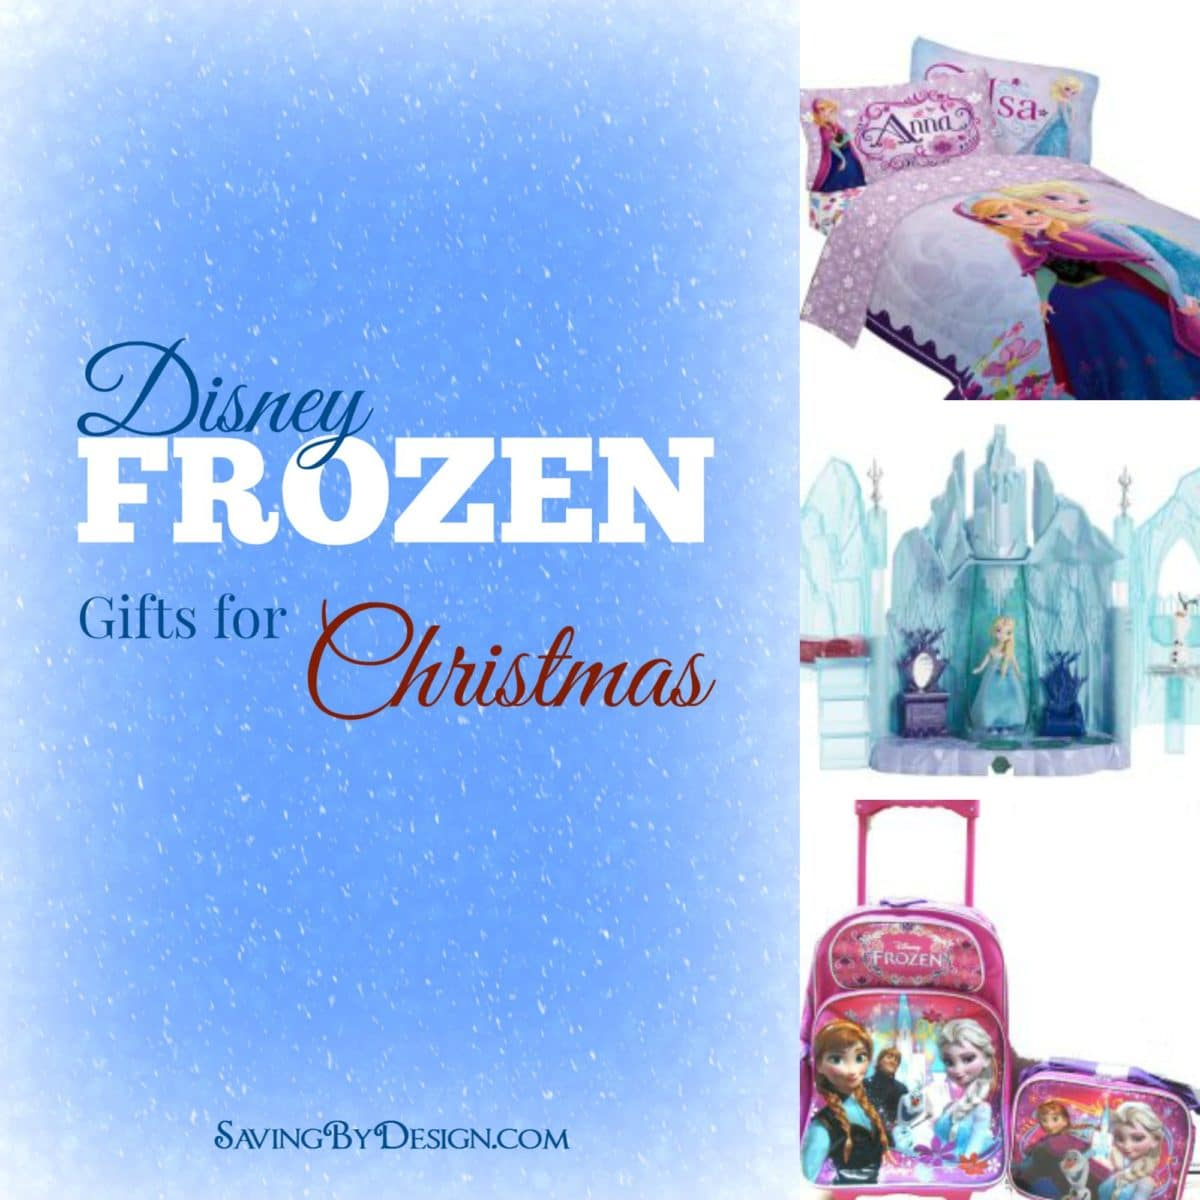 Top Disney Frozen Gifts for Christmas